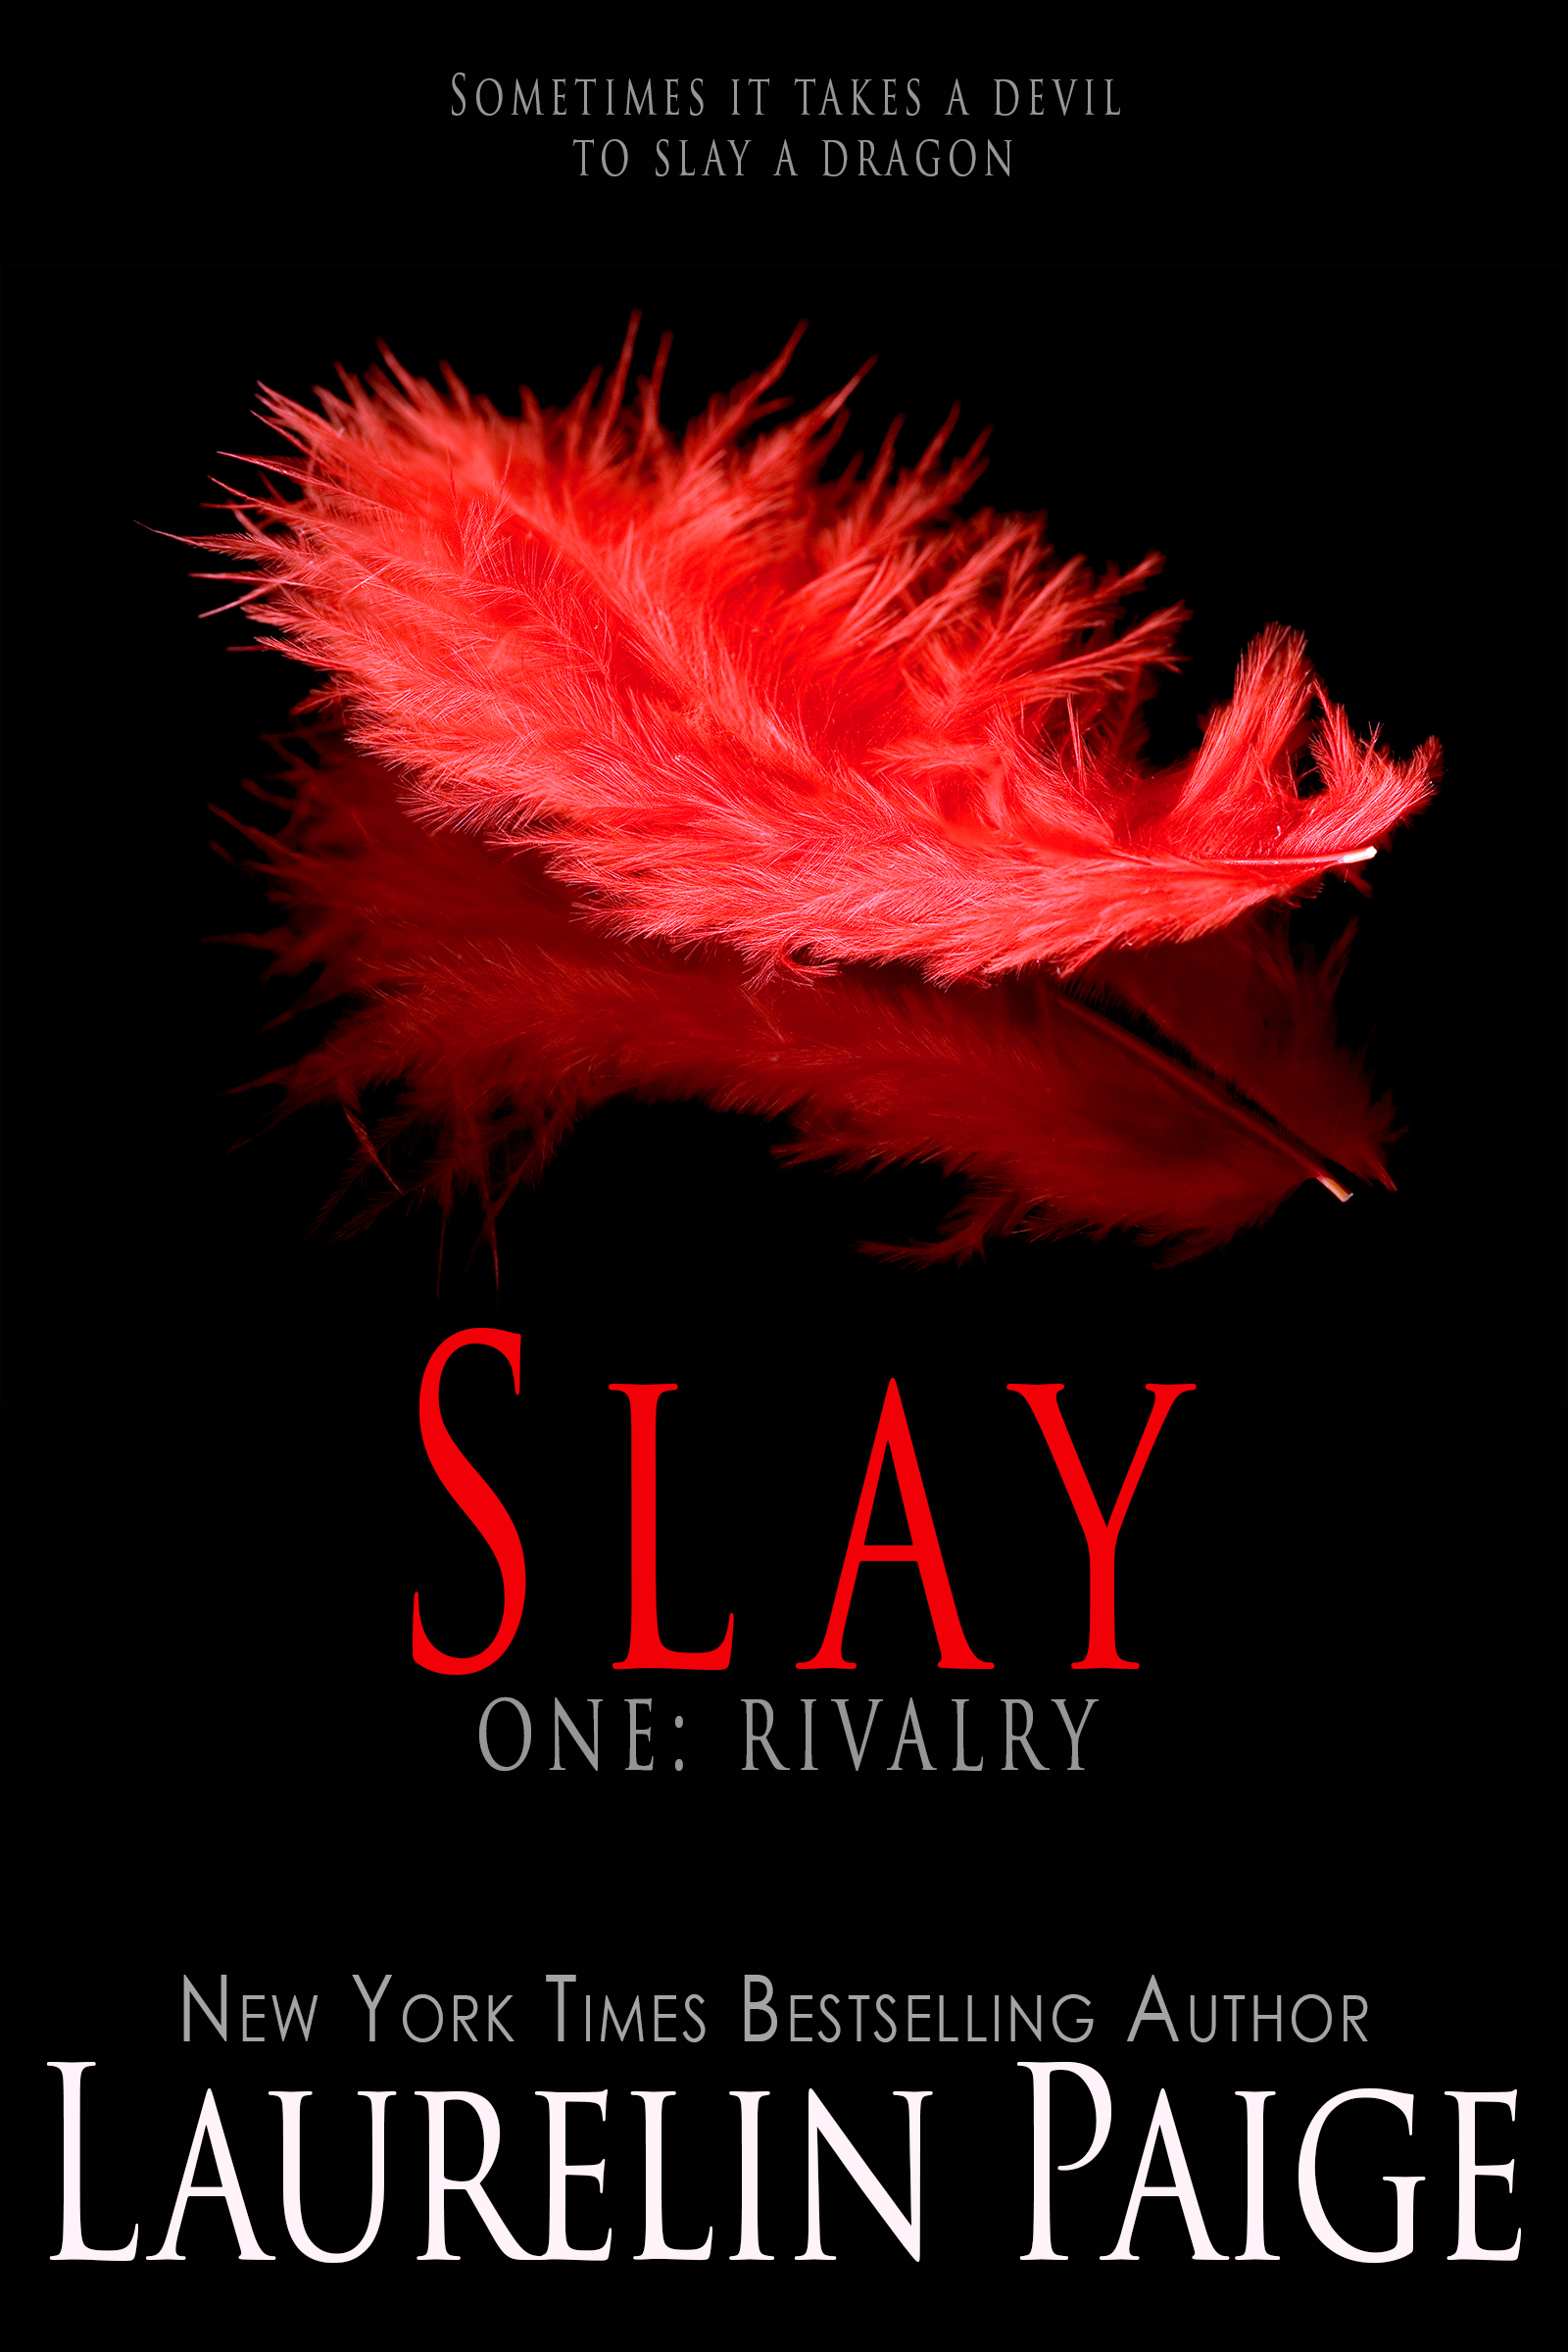 Slay One: Rivalry